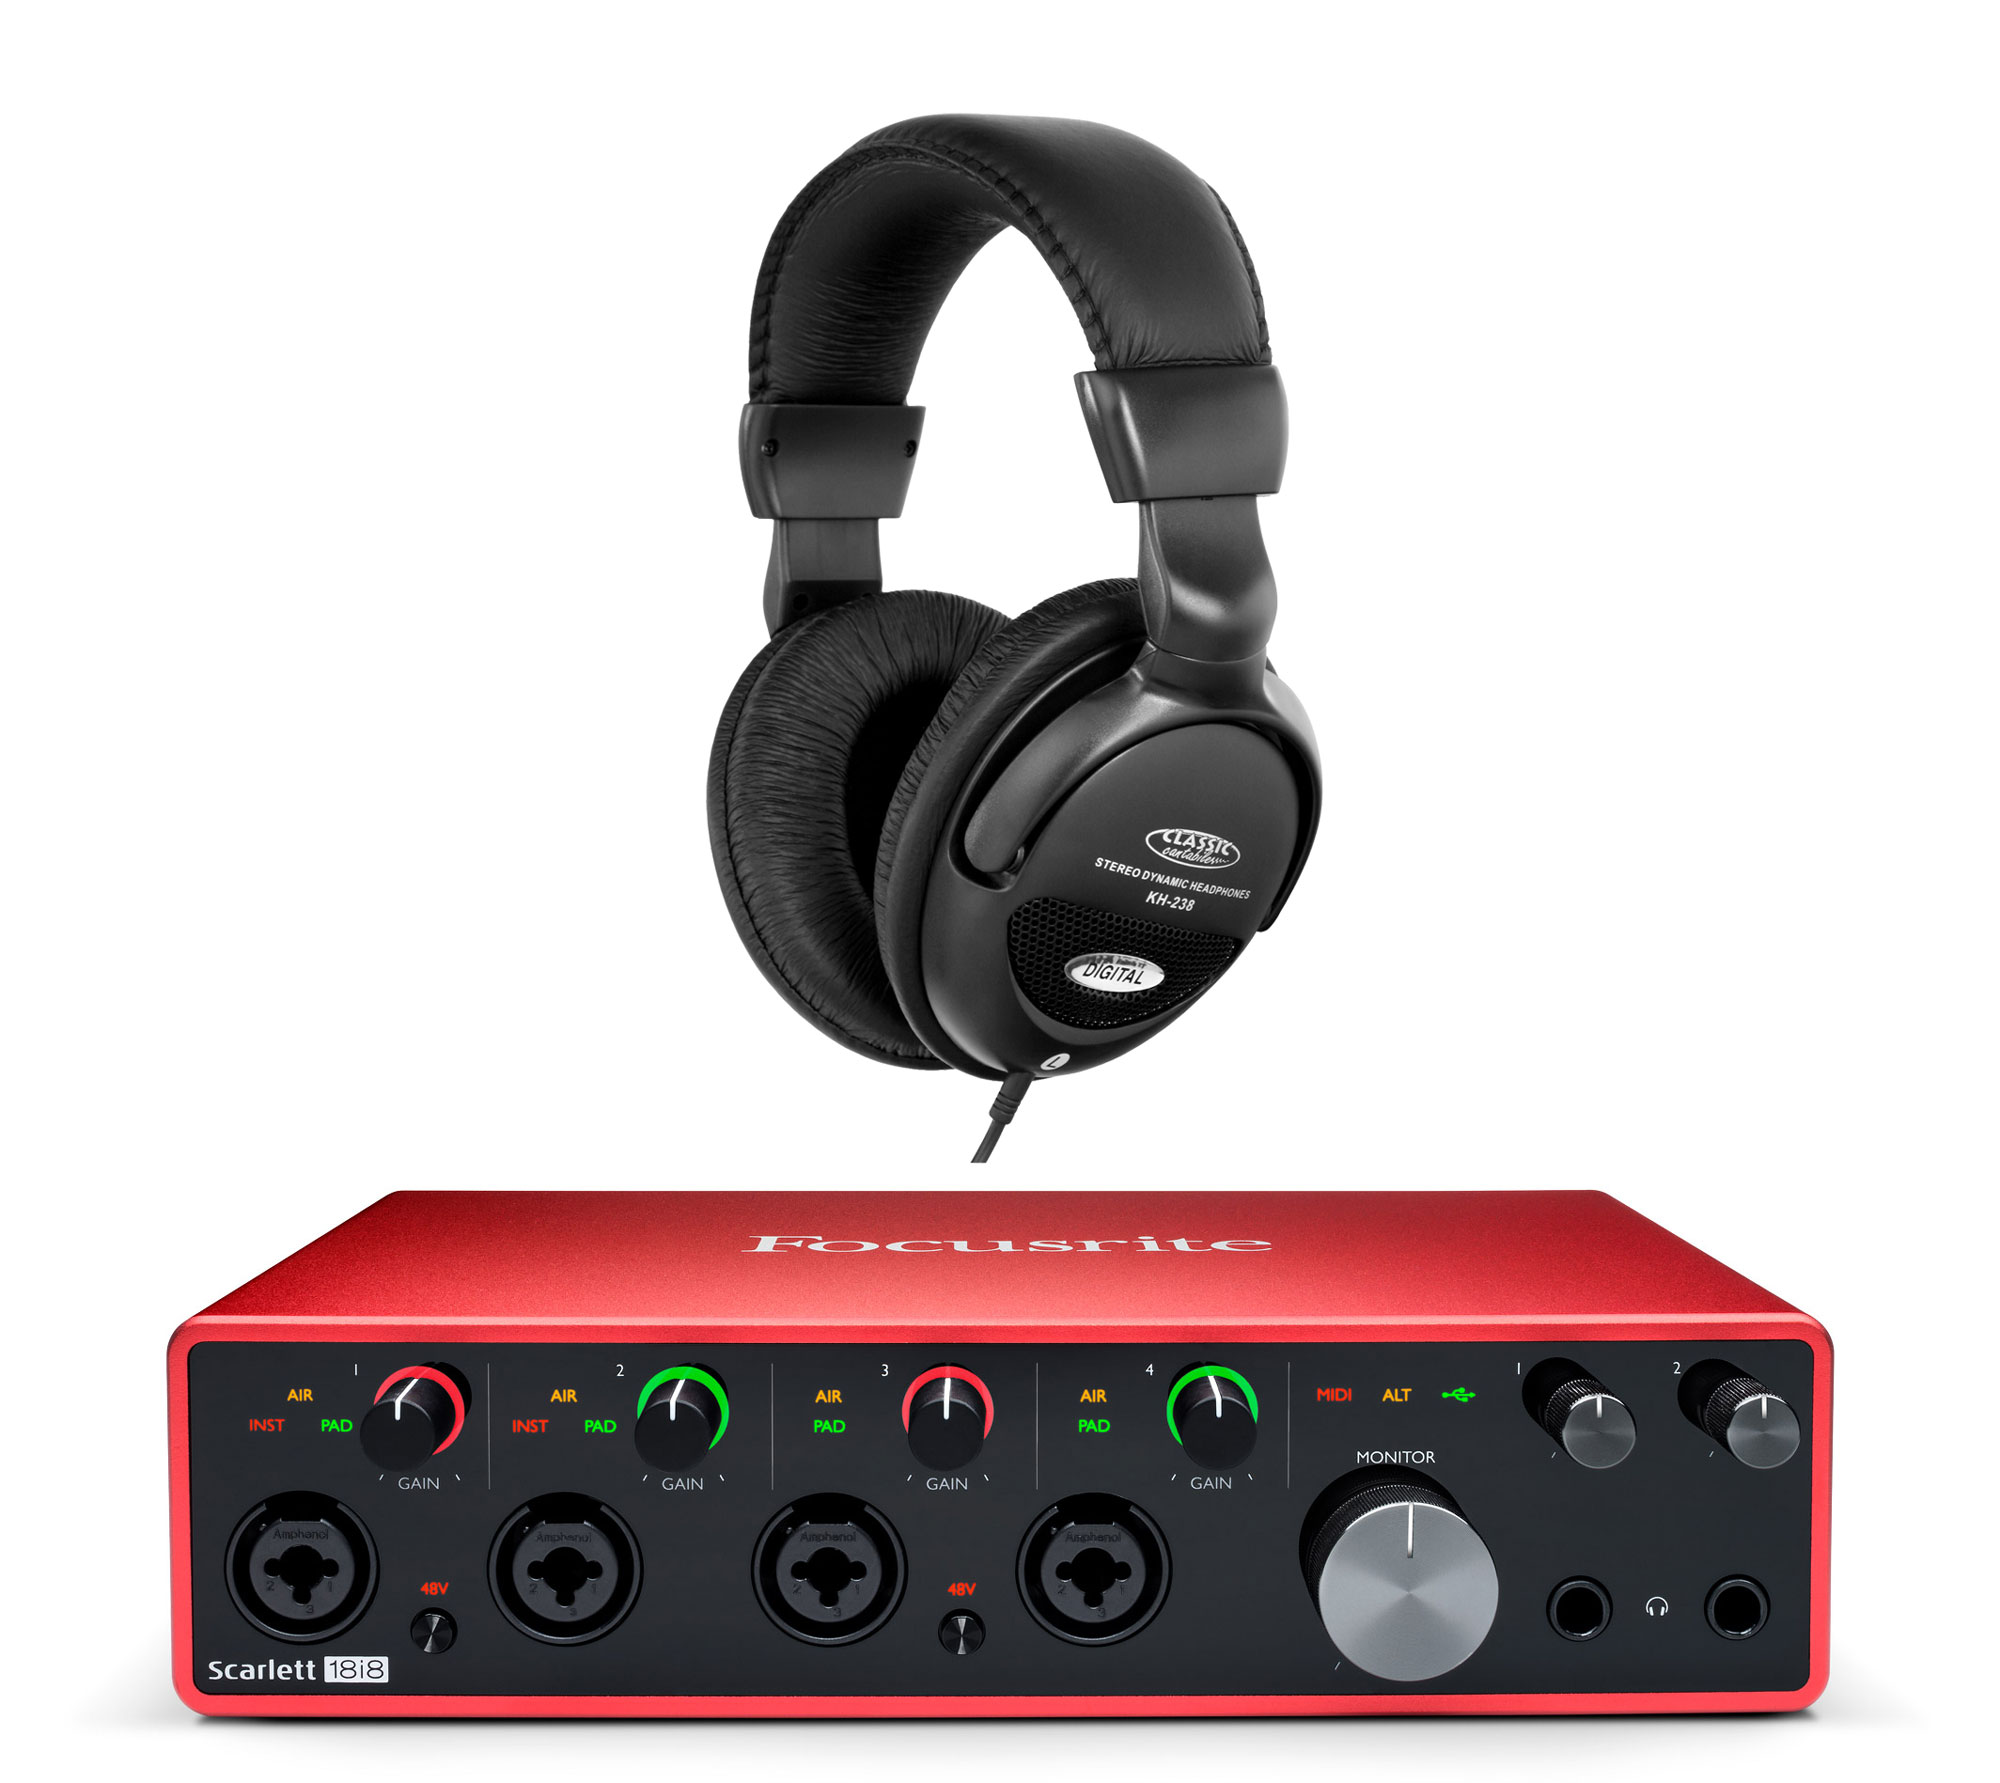 Pchardware - Focusrite Scarlett 18i8 USB Audio Interface Set - Onlineshop Musikhaus Kirstein